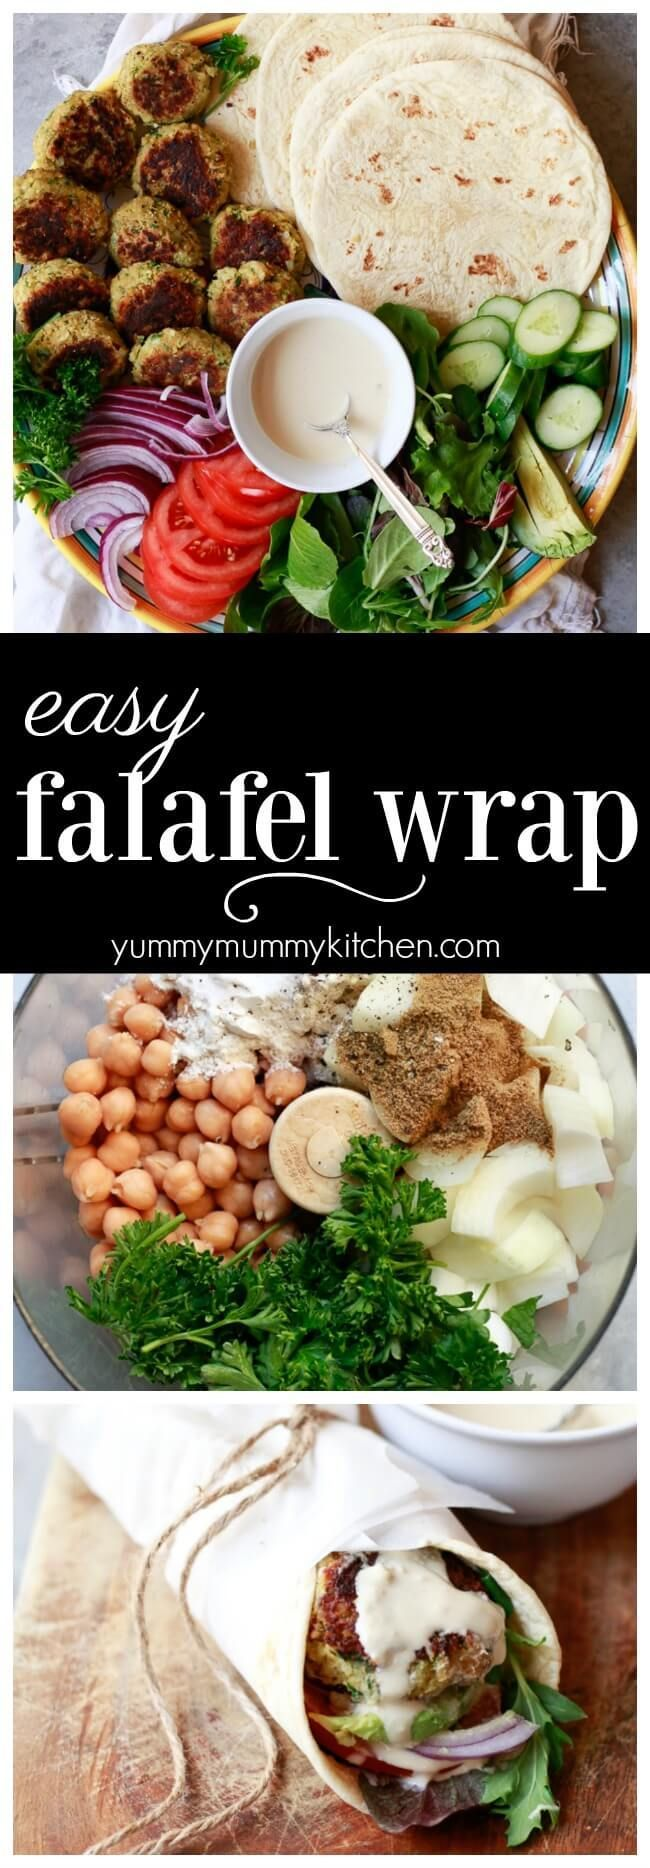 Easy Falafel Wrap Recipe with Tahini Sauce